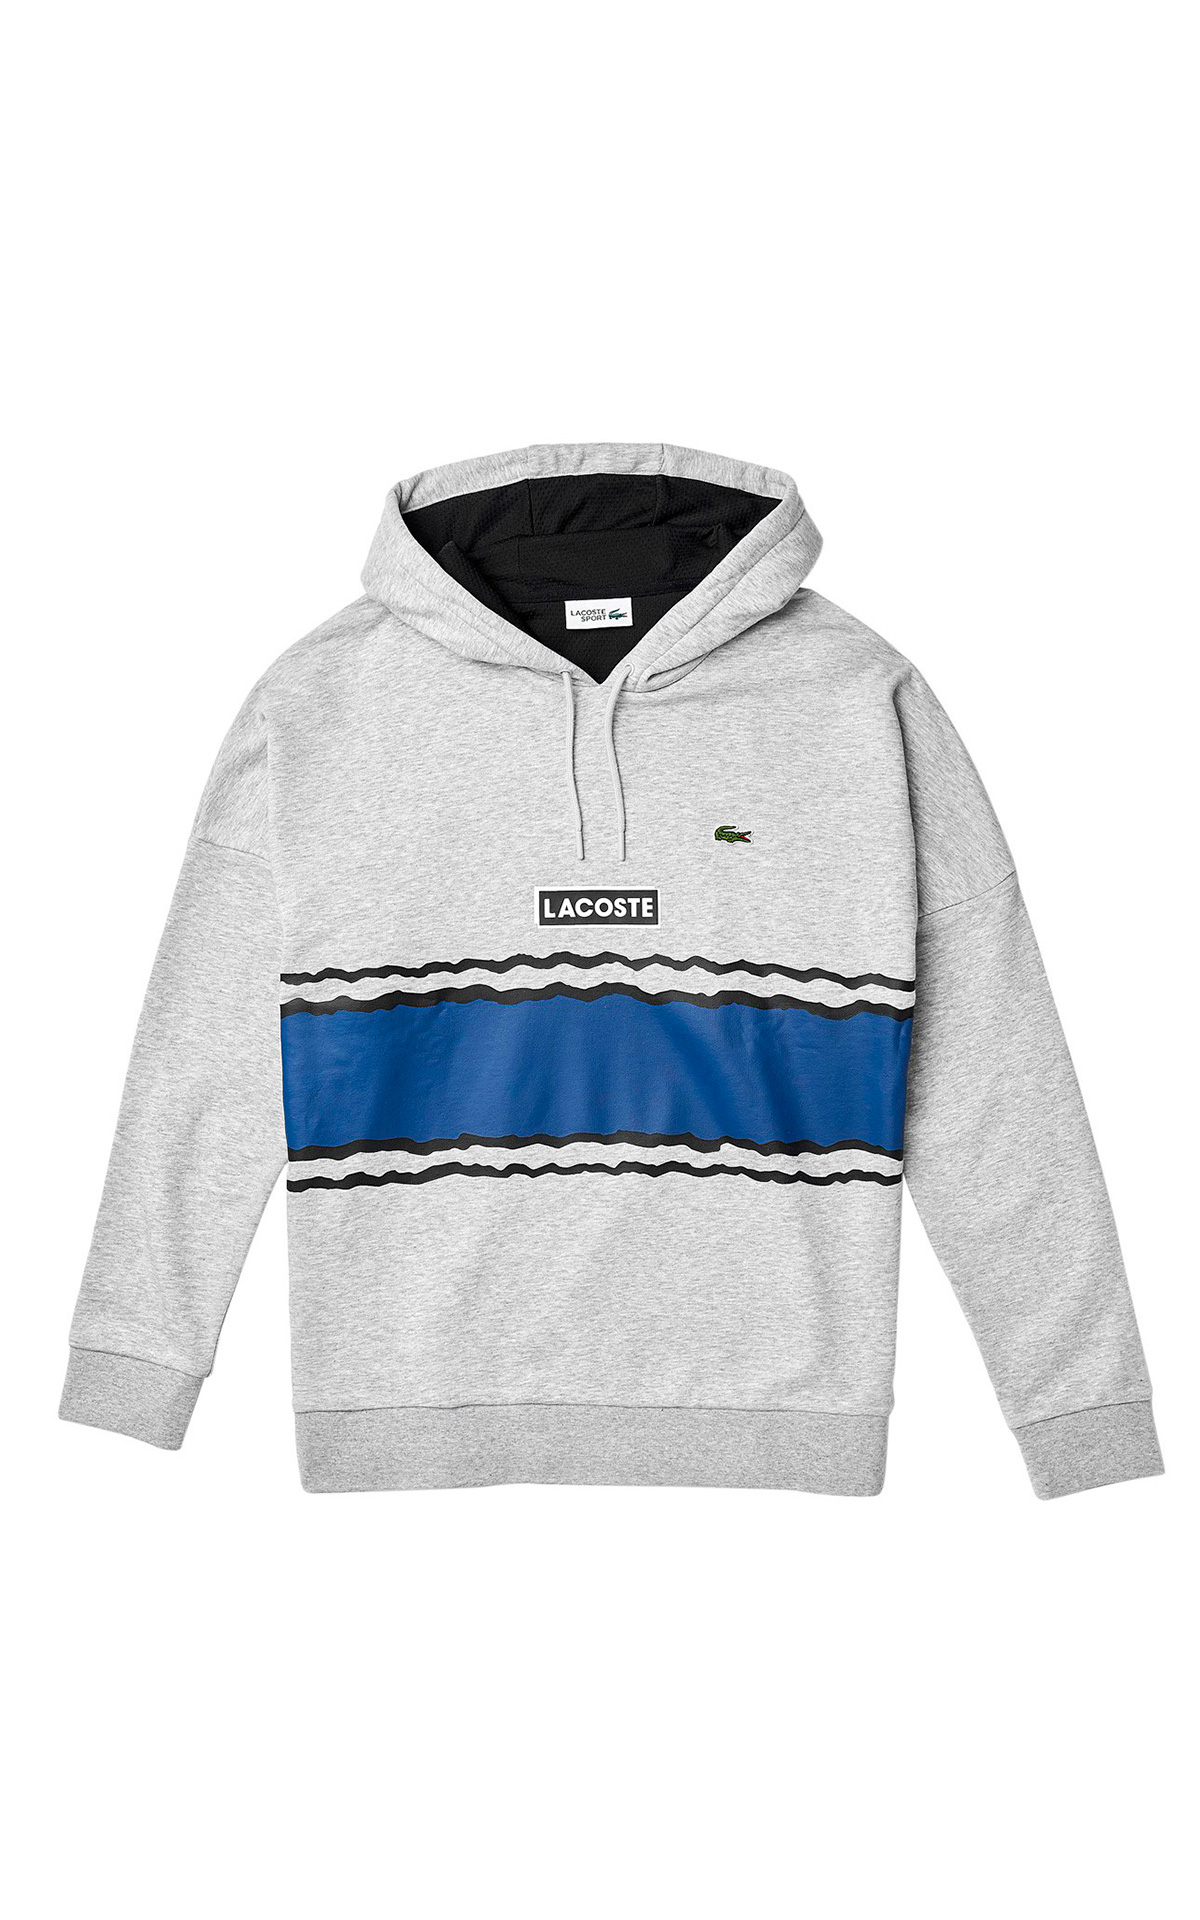 Grey sweatshirt Lacoste